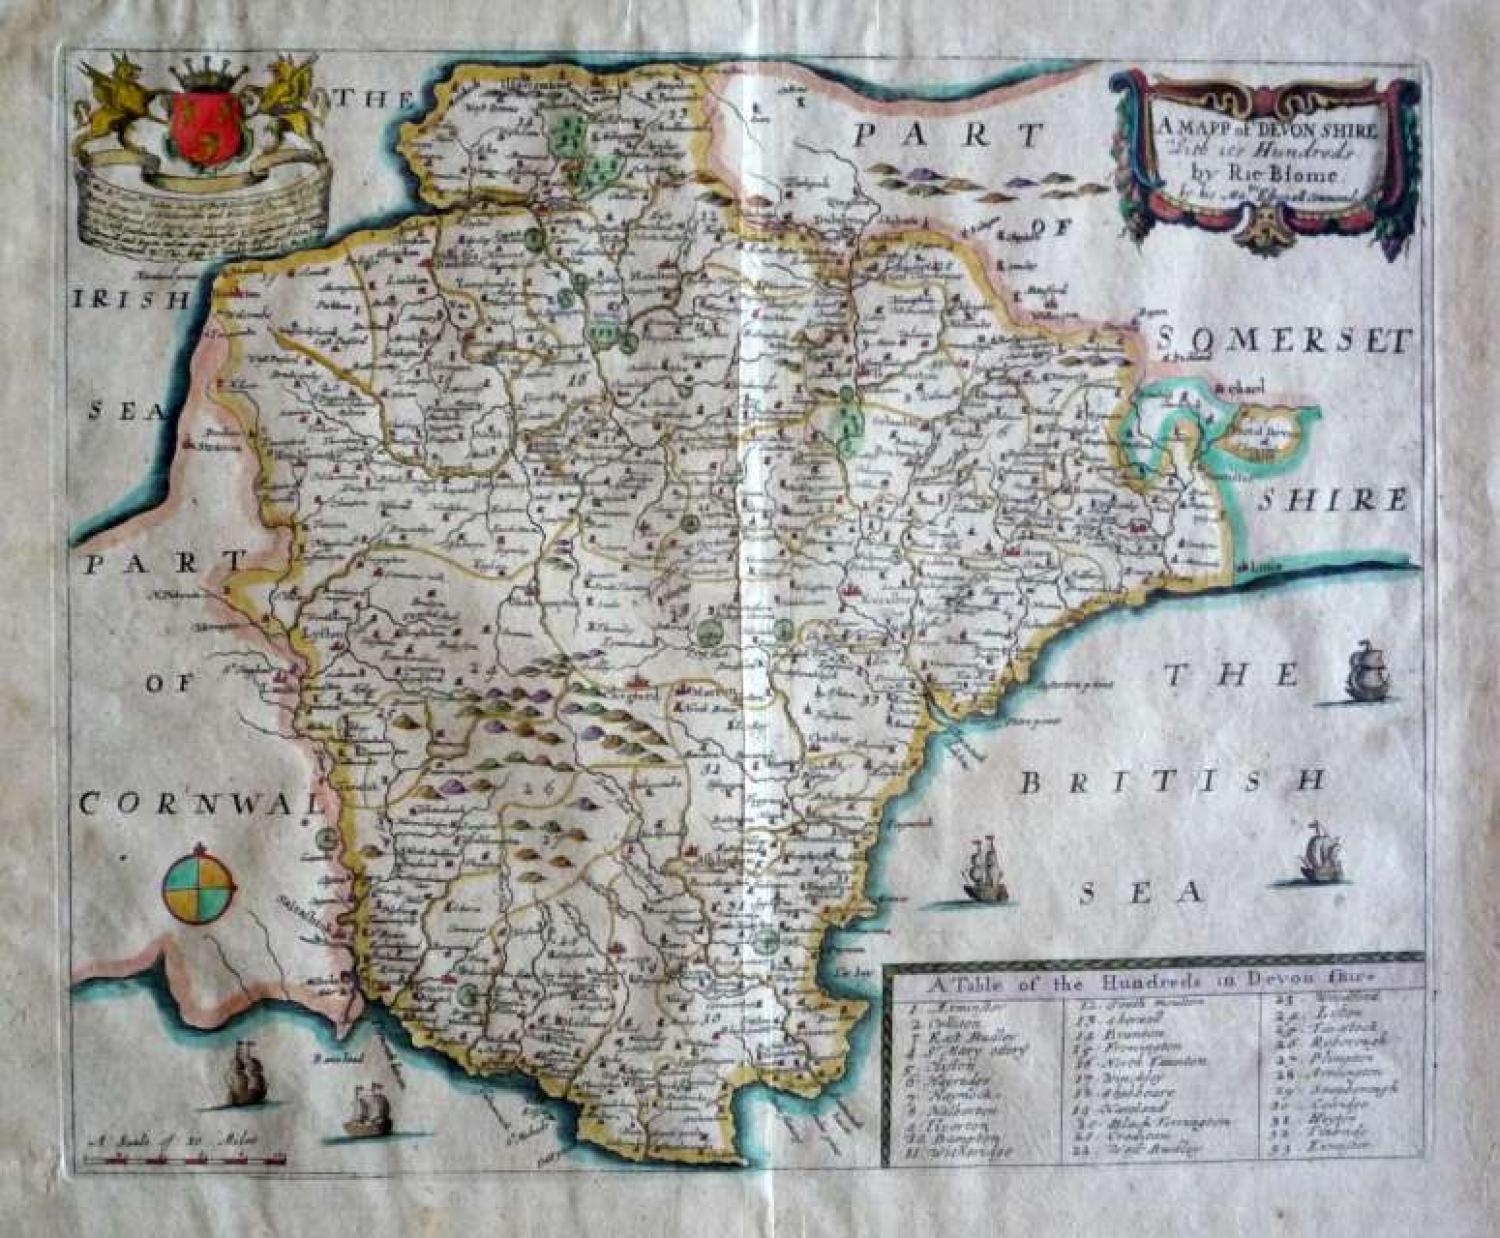 Blome A Mapp of Devon-Shire with its Hundreds